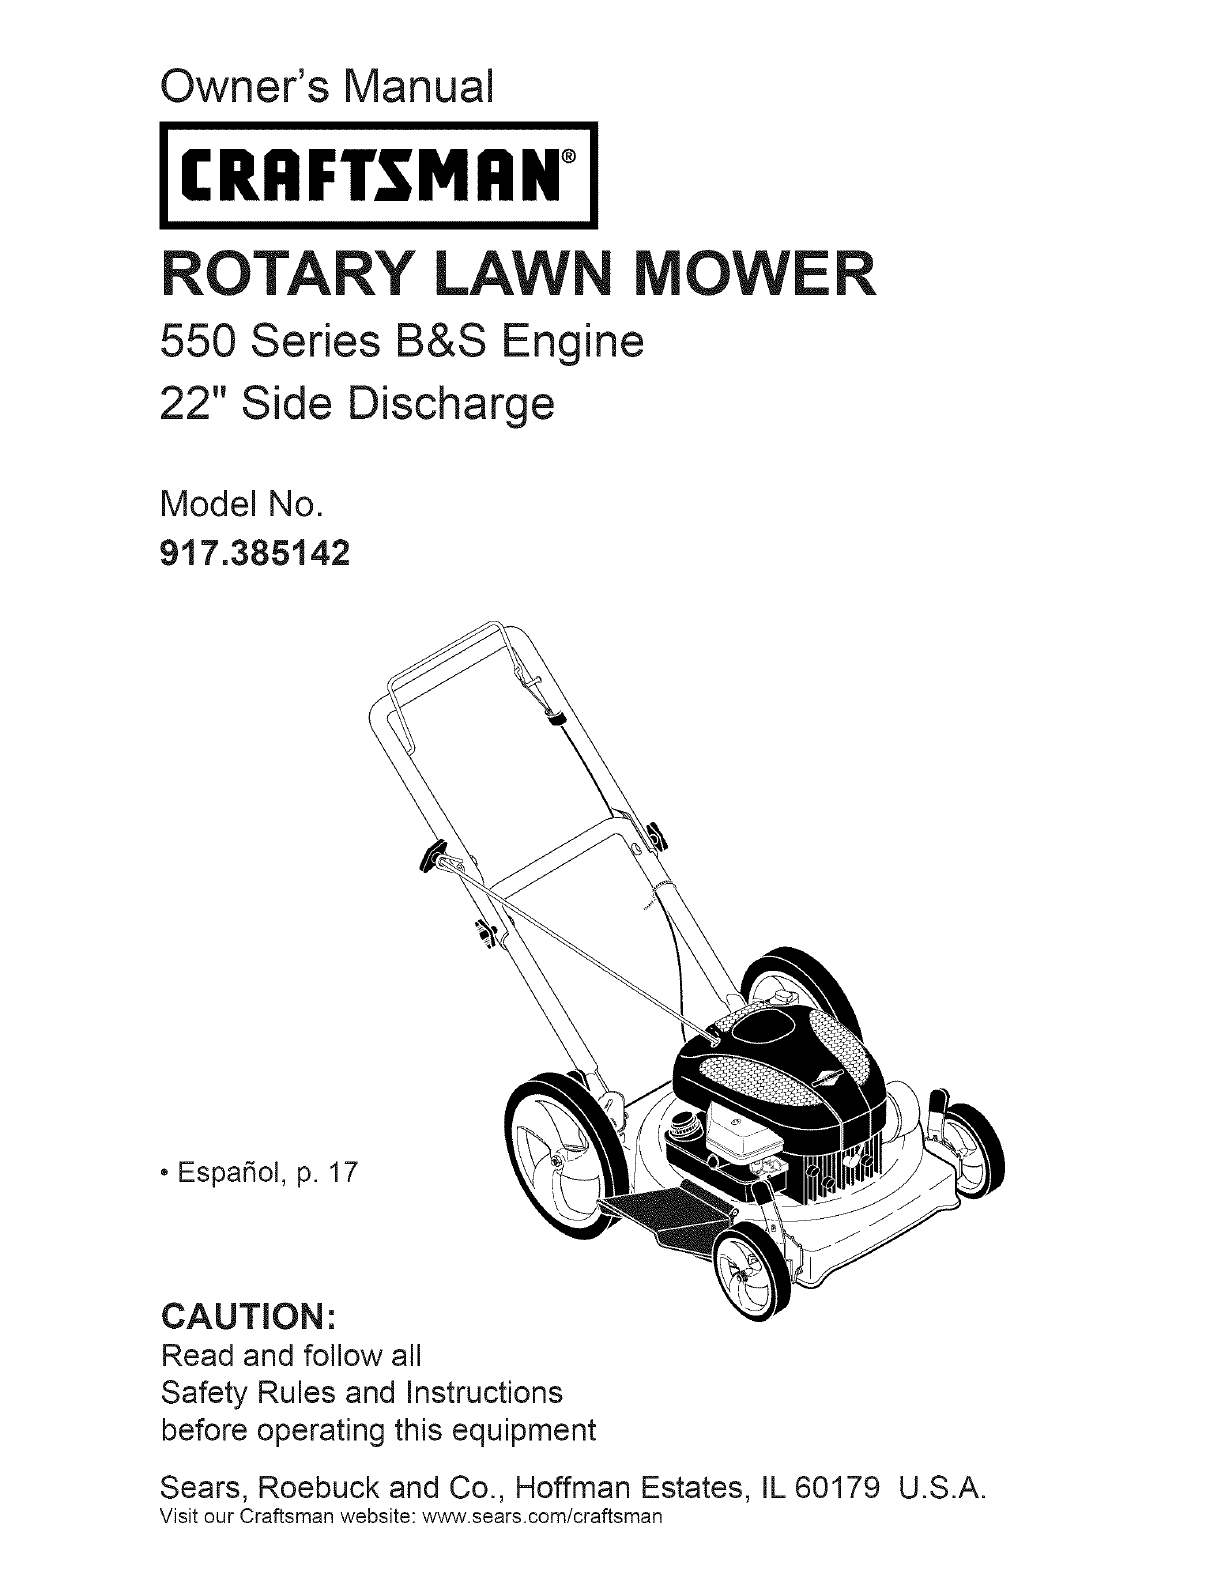 Craftsman Lawn Mower 917385142 User Guide 40 Hp Diagram And Parts List For All Owners Manual